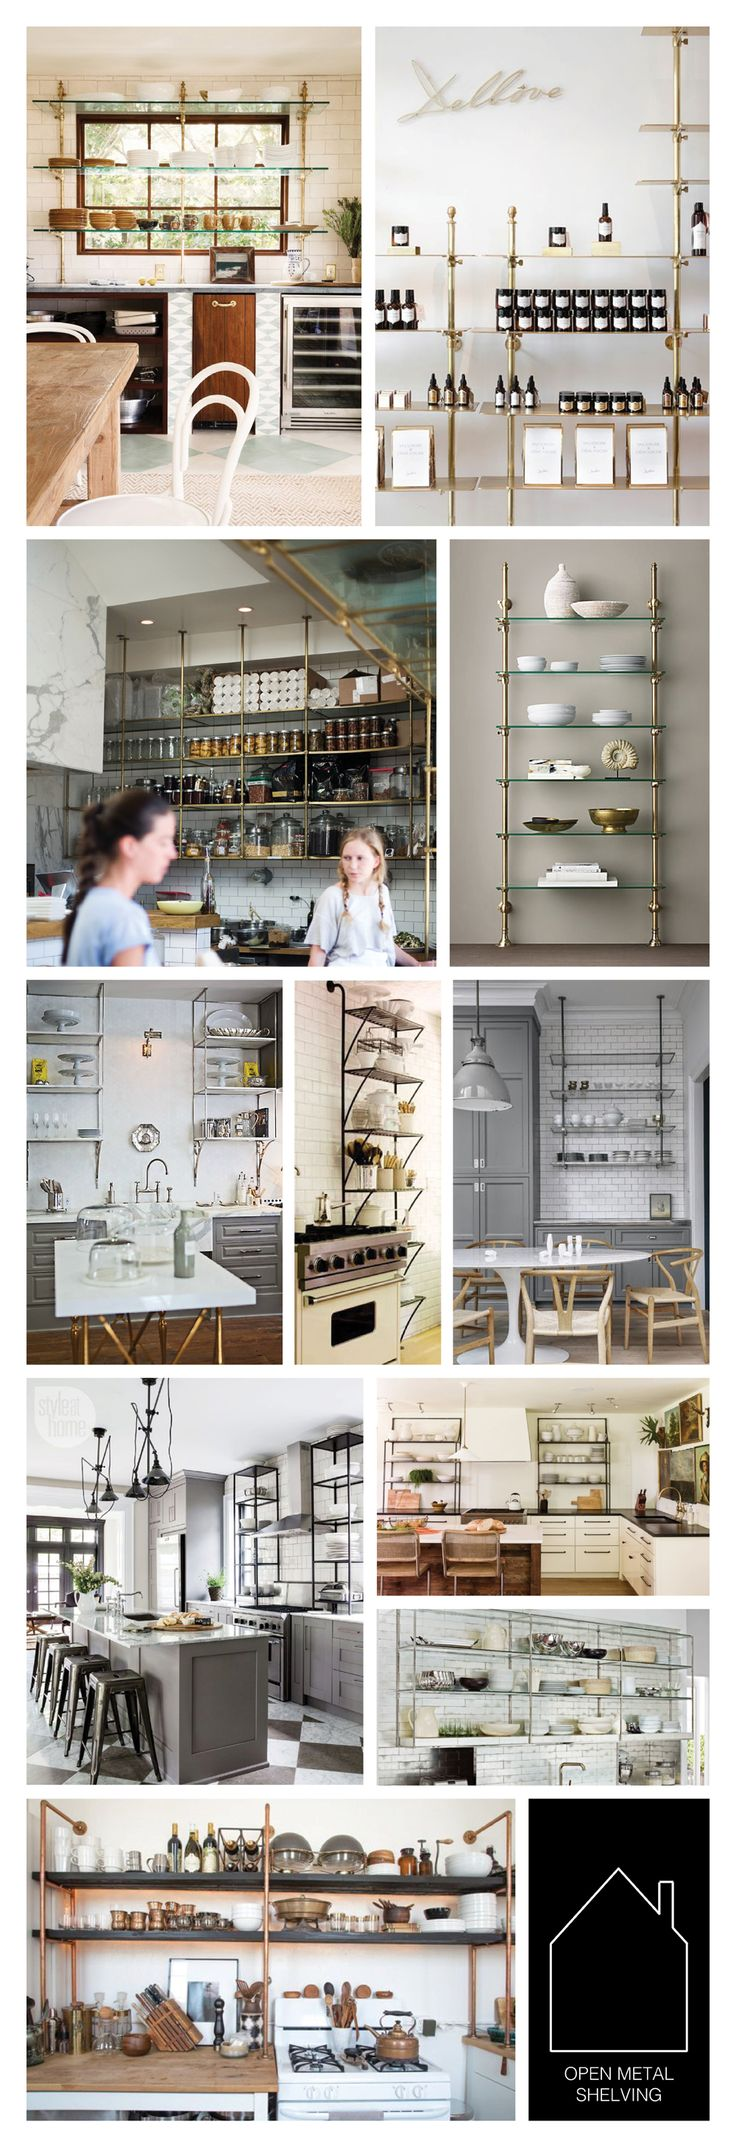 One kitchen trend I can really get behind is open metal shelving. Whether it is brass, iron, copper or chrome - I love the added interest and texture it brings to a space. Also unlike solid cabinetry, it makes a kitchen feel more open and brighter while still providing a cost effective storage solution. Below are more than a few favorite examples. from top left - Hawaiian vacation home designed by Michelle R. Smith via DOMAINE - retail brass shelving via source unknown - commercial br...